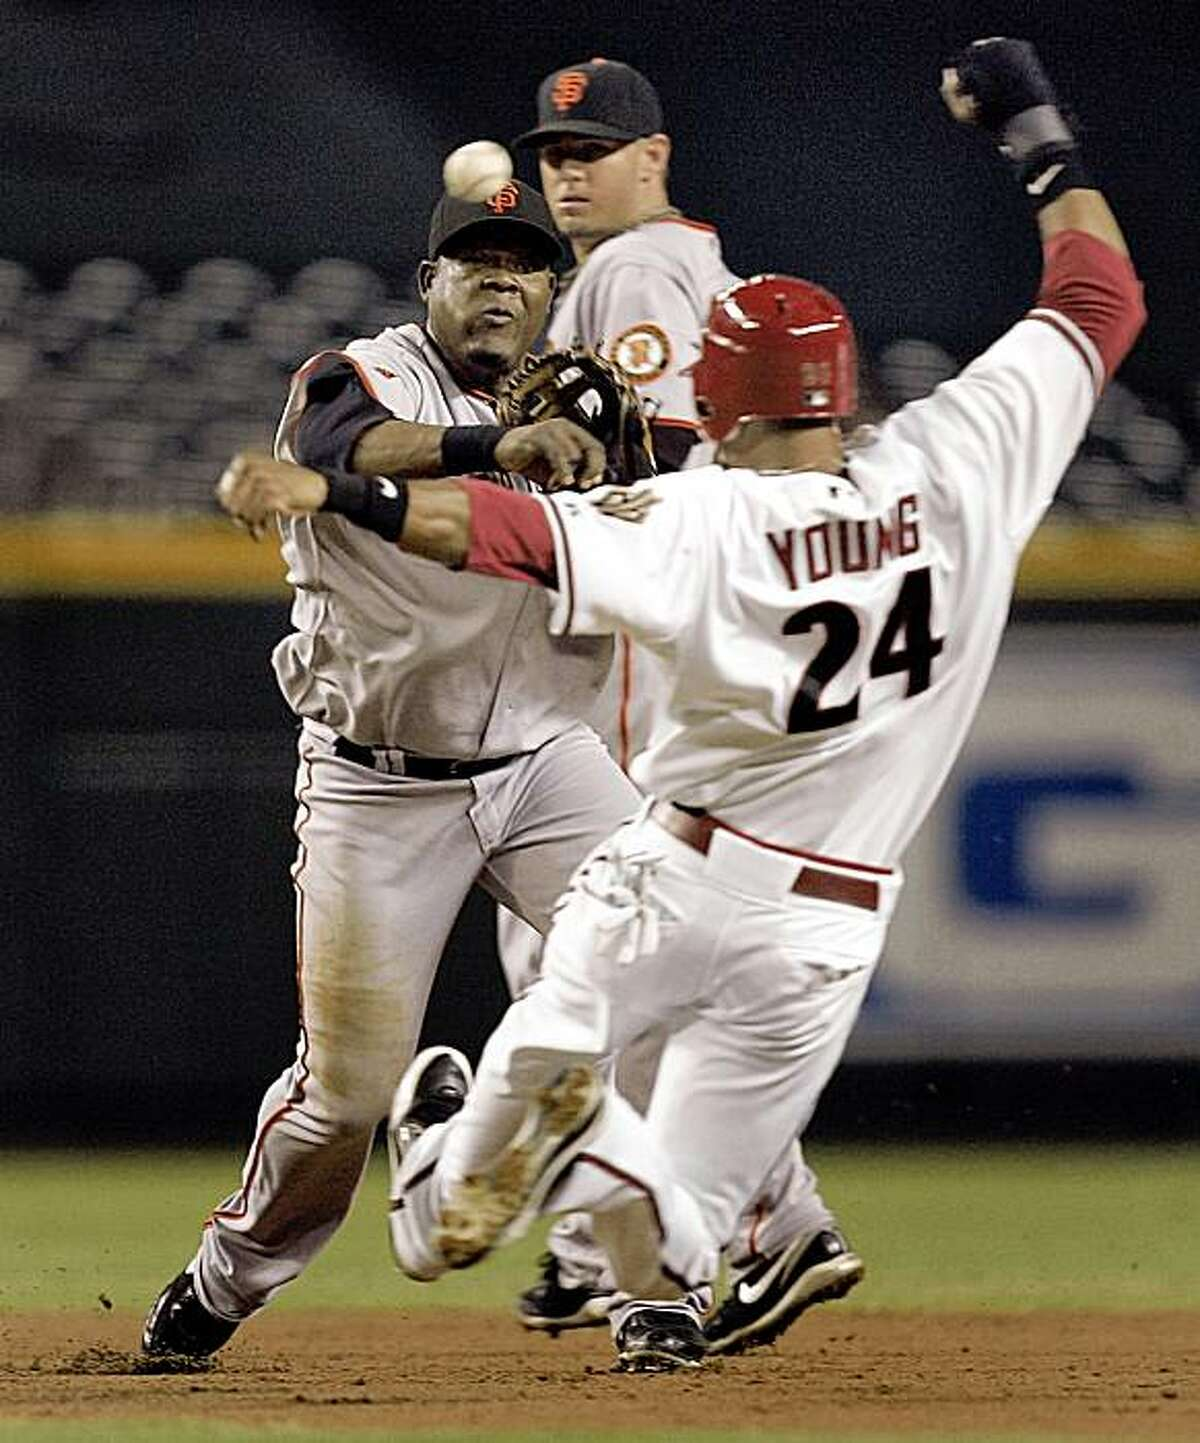 San Francisco Giants' Juan Uribe, left, forces out Arizona Diamondbacks' Chris Young (24) as he turns a double play on Diamondbacks' Stephen Drew during the third inning of a baseball game Monday, Sept. 21, 2009, in Phoenix.